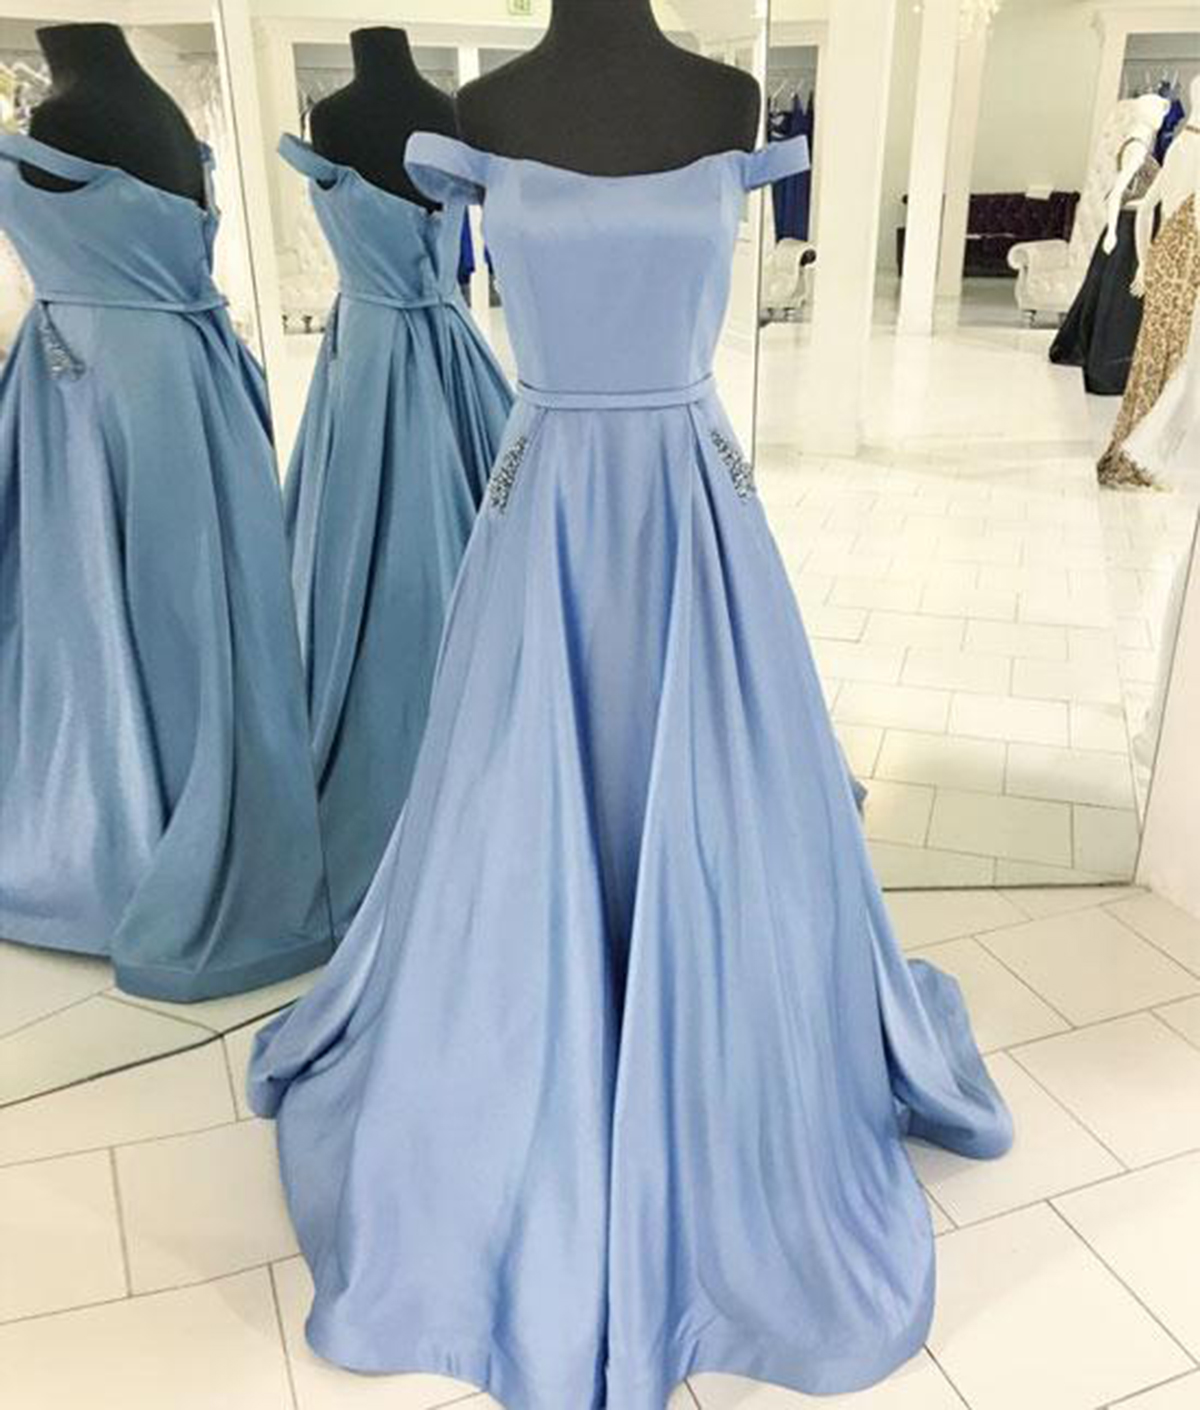 Simple Off Shoulder Light Blue Satin Prom Dress With Beaded Pockets ... 10182831a